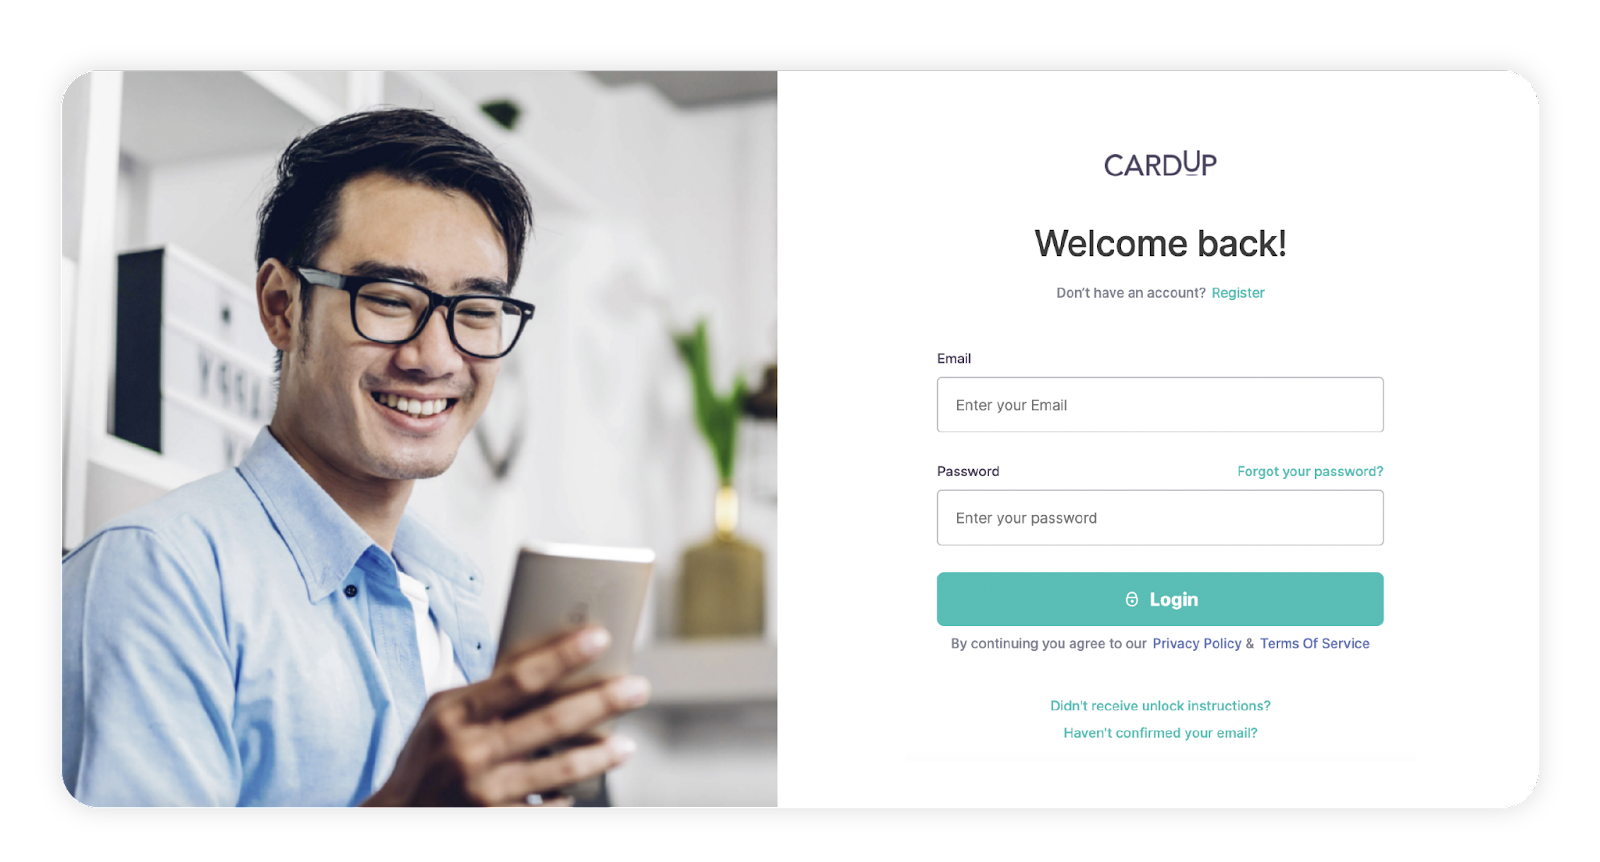 Sign up for CardUp